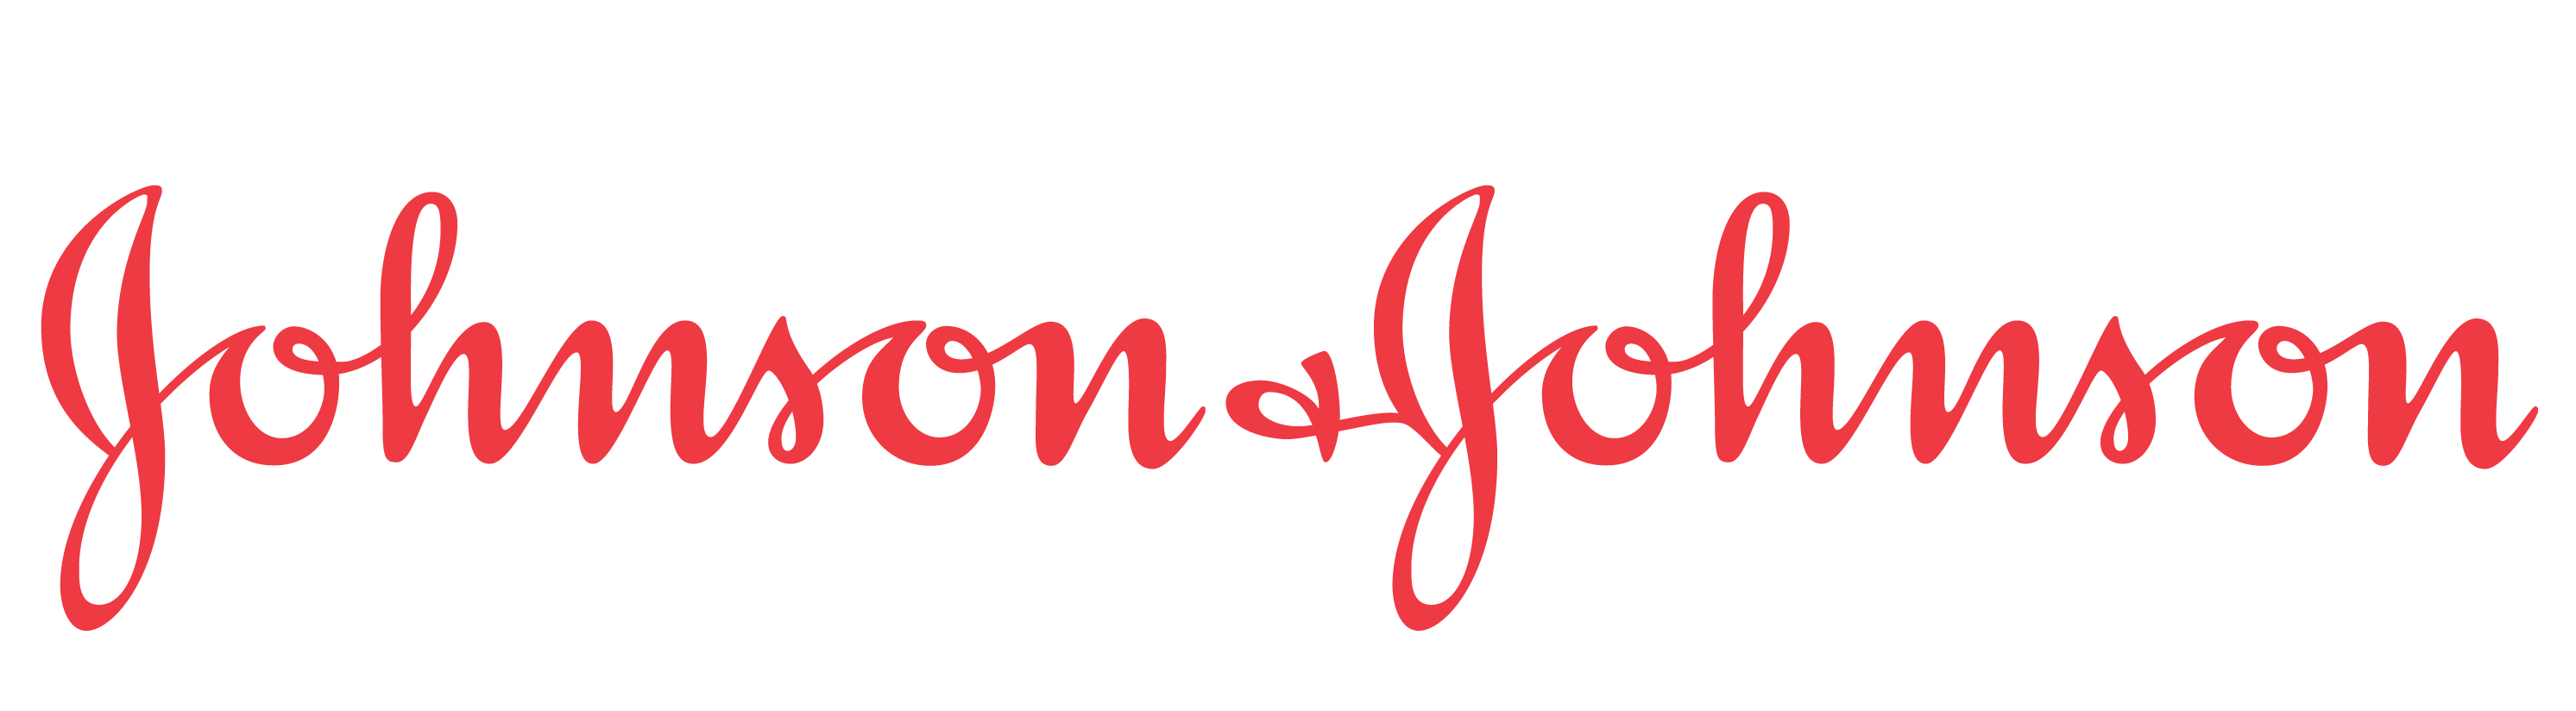 https://i2.wp.com/breathingroomfoundation.org/wp-content/uploads/2018/12/johnson-johnson-logo.jpg?ssl=1